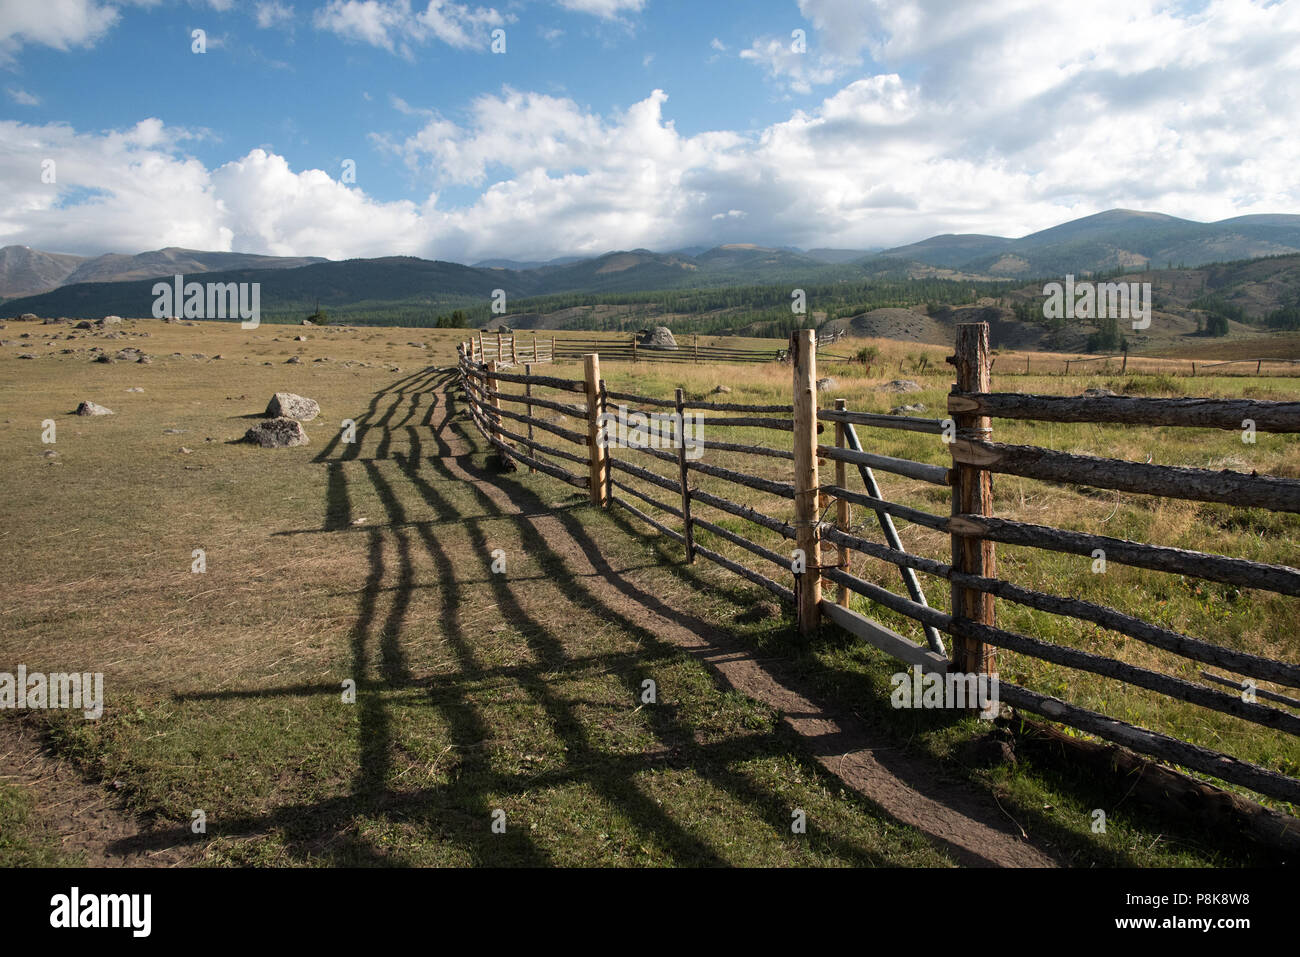 Wooden fence in the highlands and blue sky with clouds - Stock Image